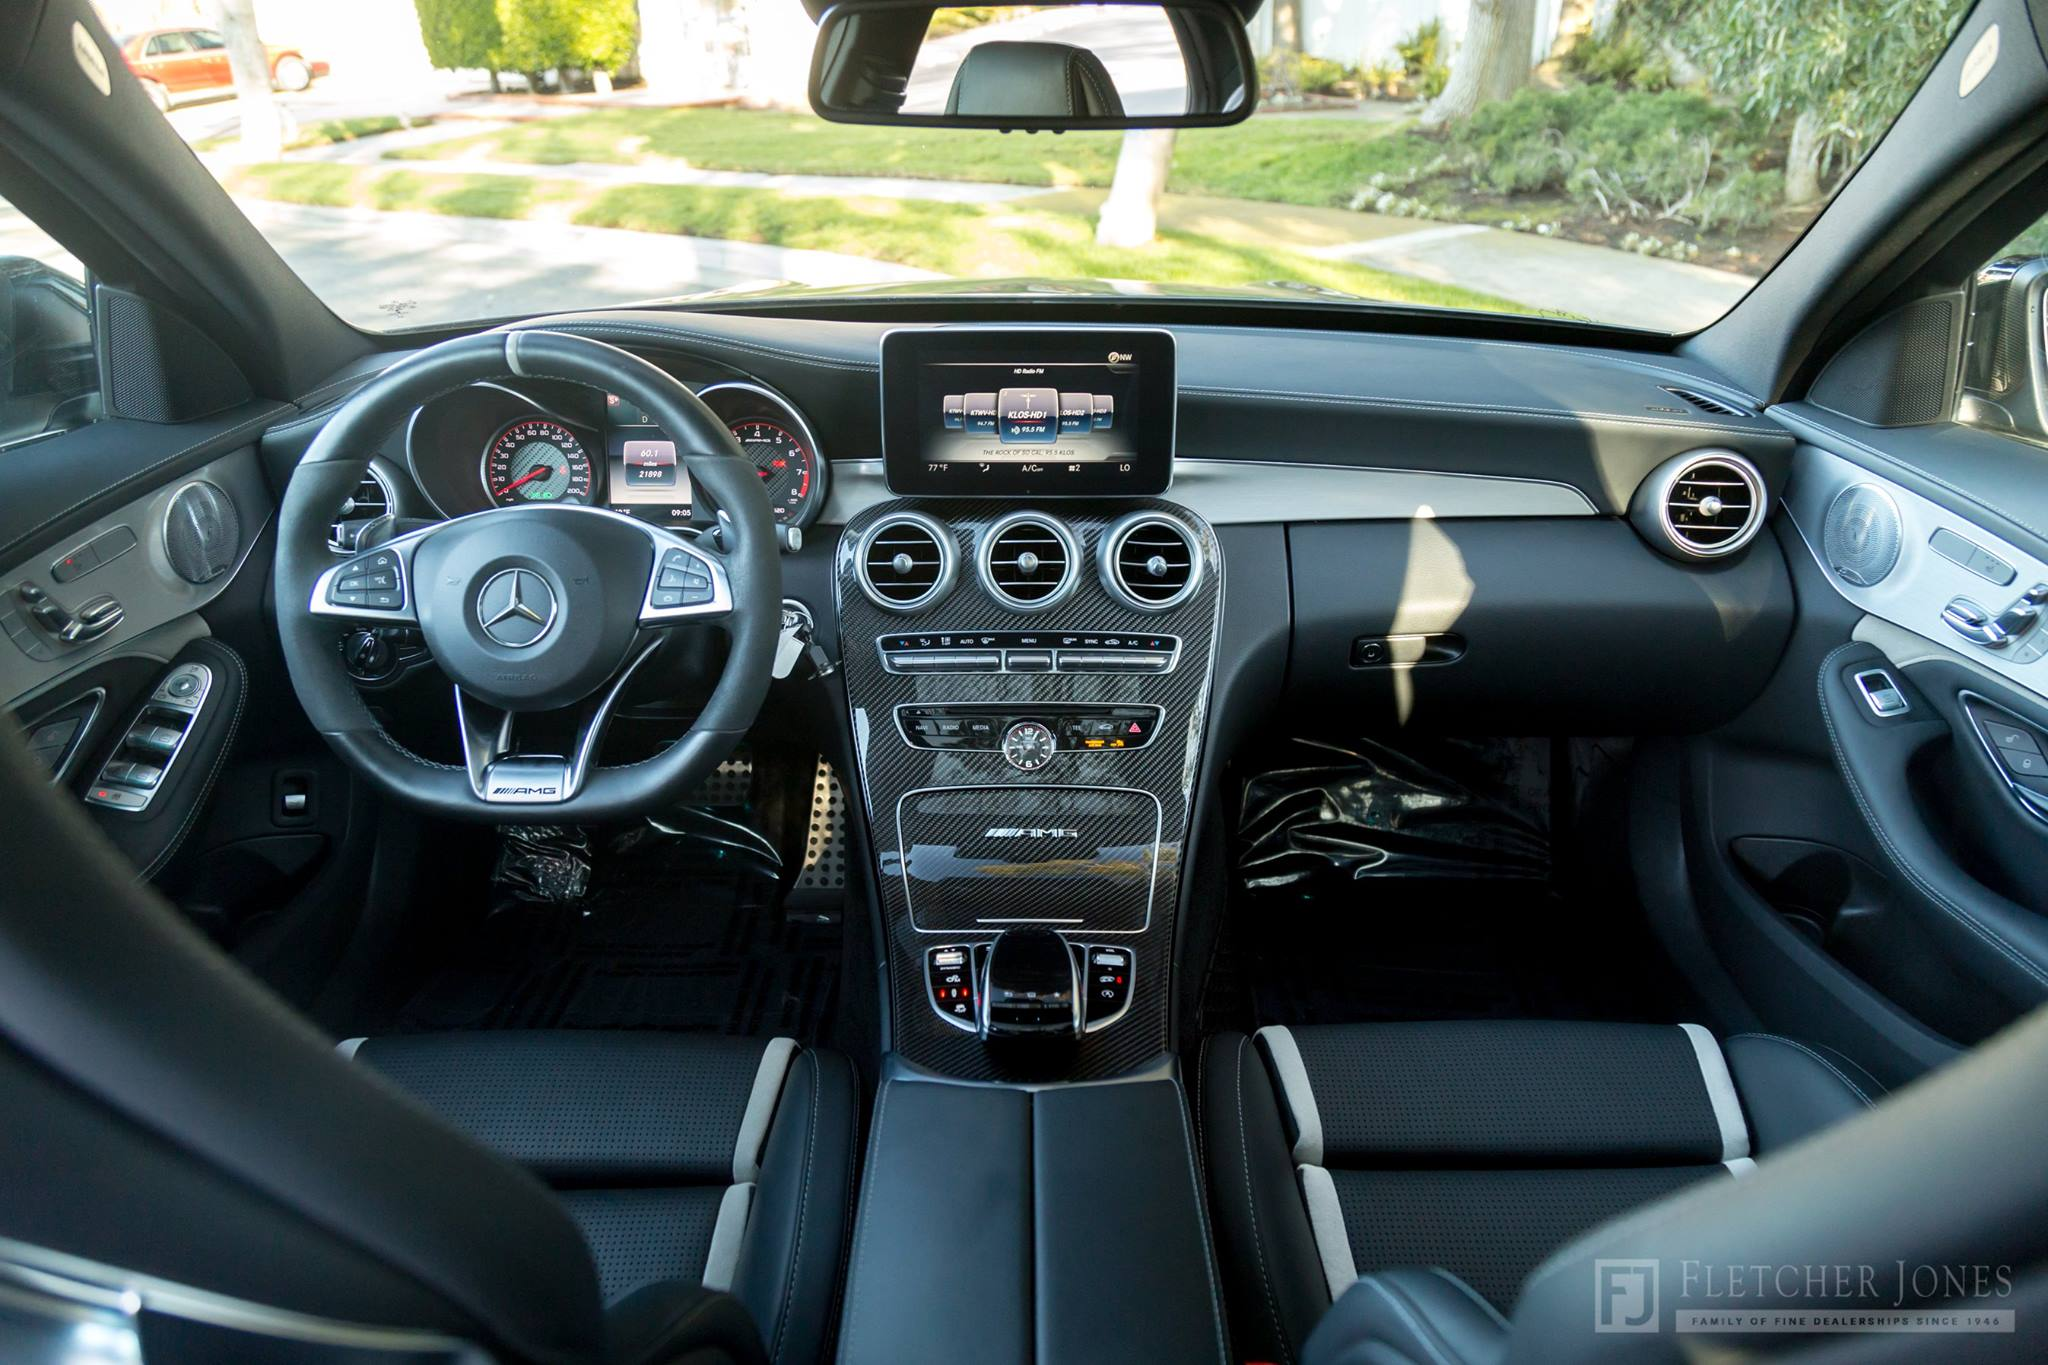 Mercedes benz navigation system mercedes benz of temecula for Mercedes benz navigation system